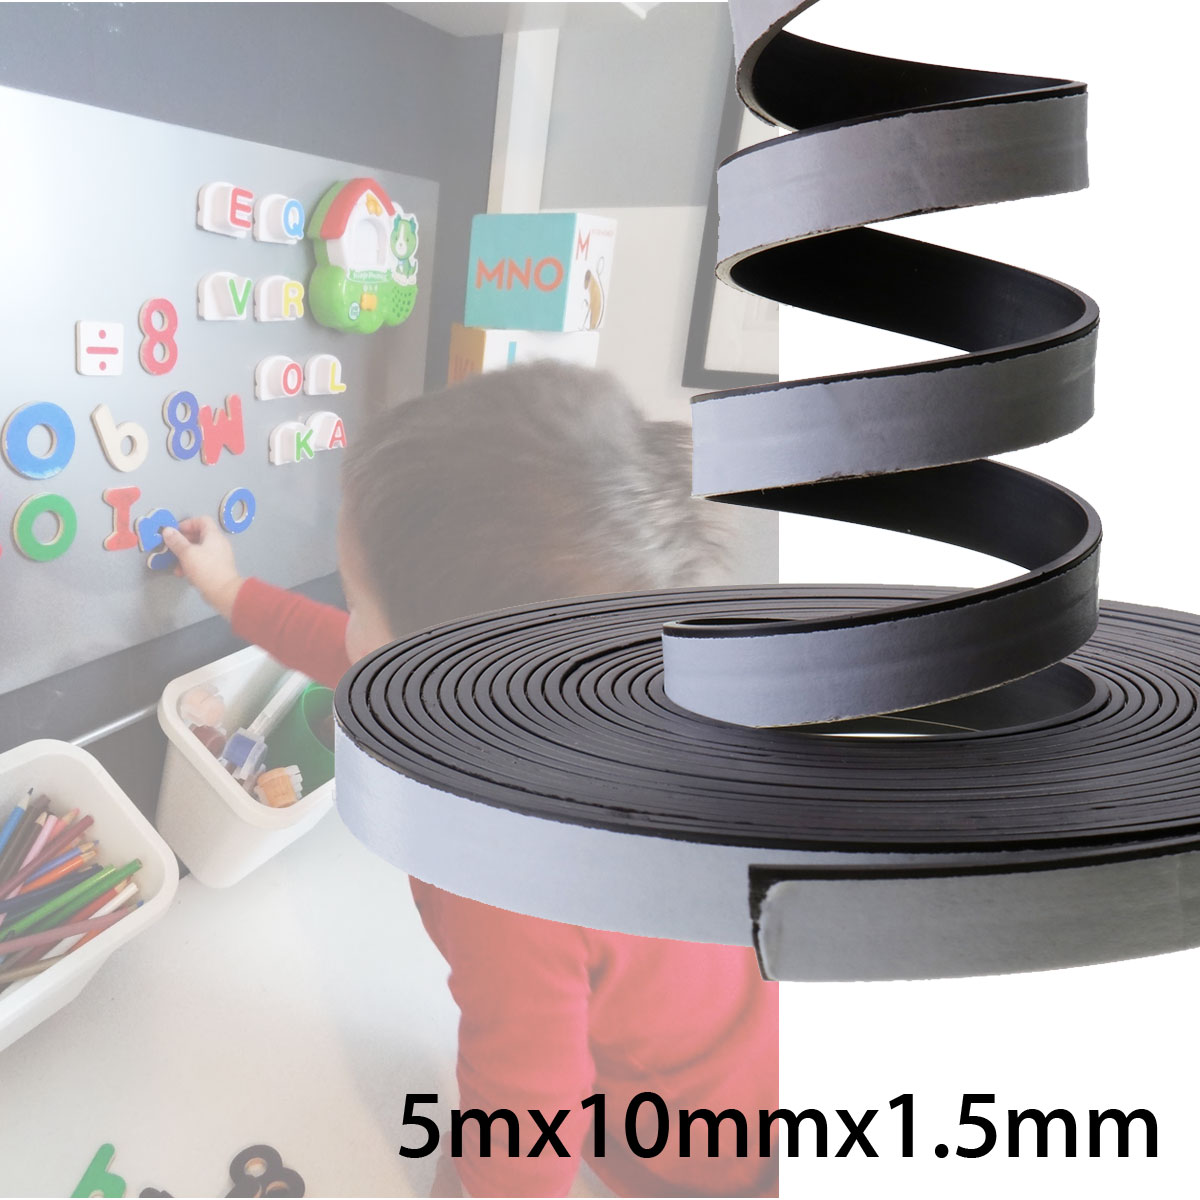 5M Self Adhesive Flexible Soft Rubber Magnetic Tape Magnet DIY Craft Strip Rolls dot approval brand cg512 chopper vintage motorcycle helmet retro motocicleta cacapete casco casque open face harley helmets